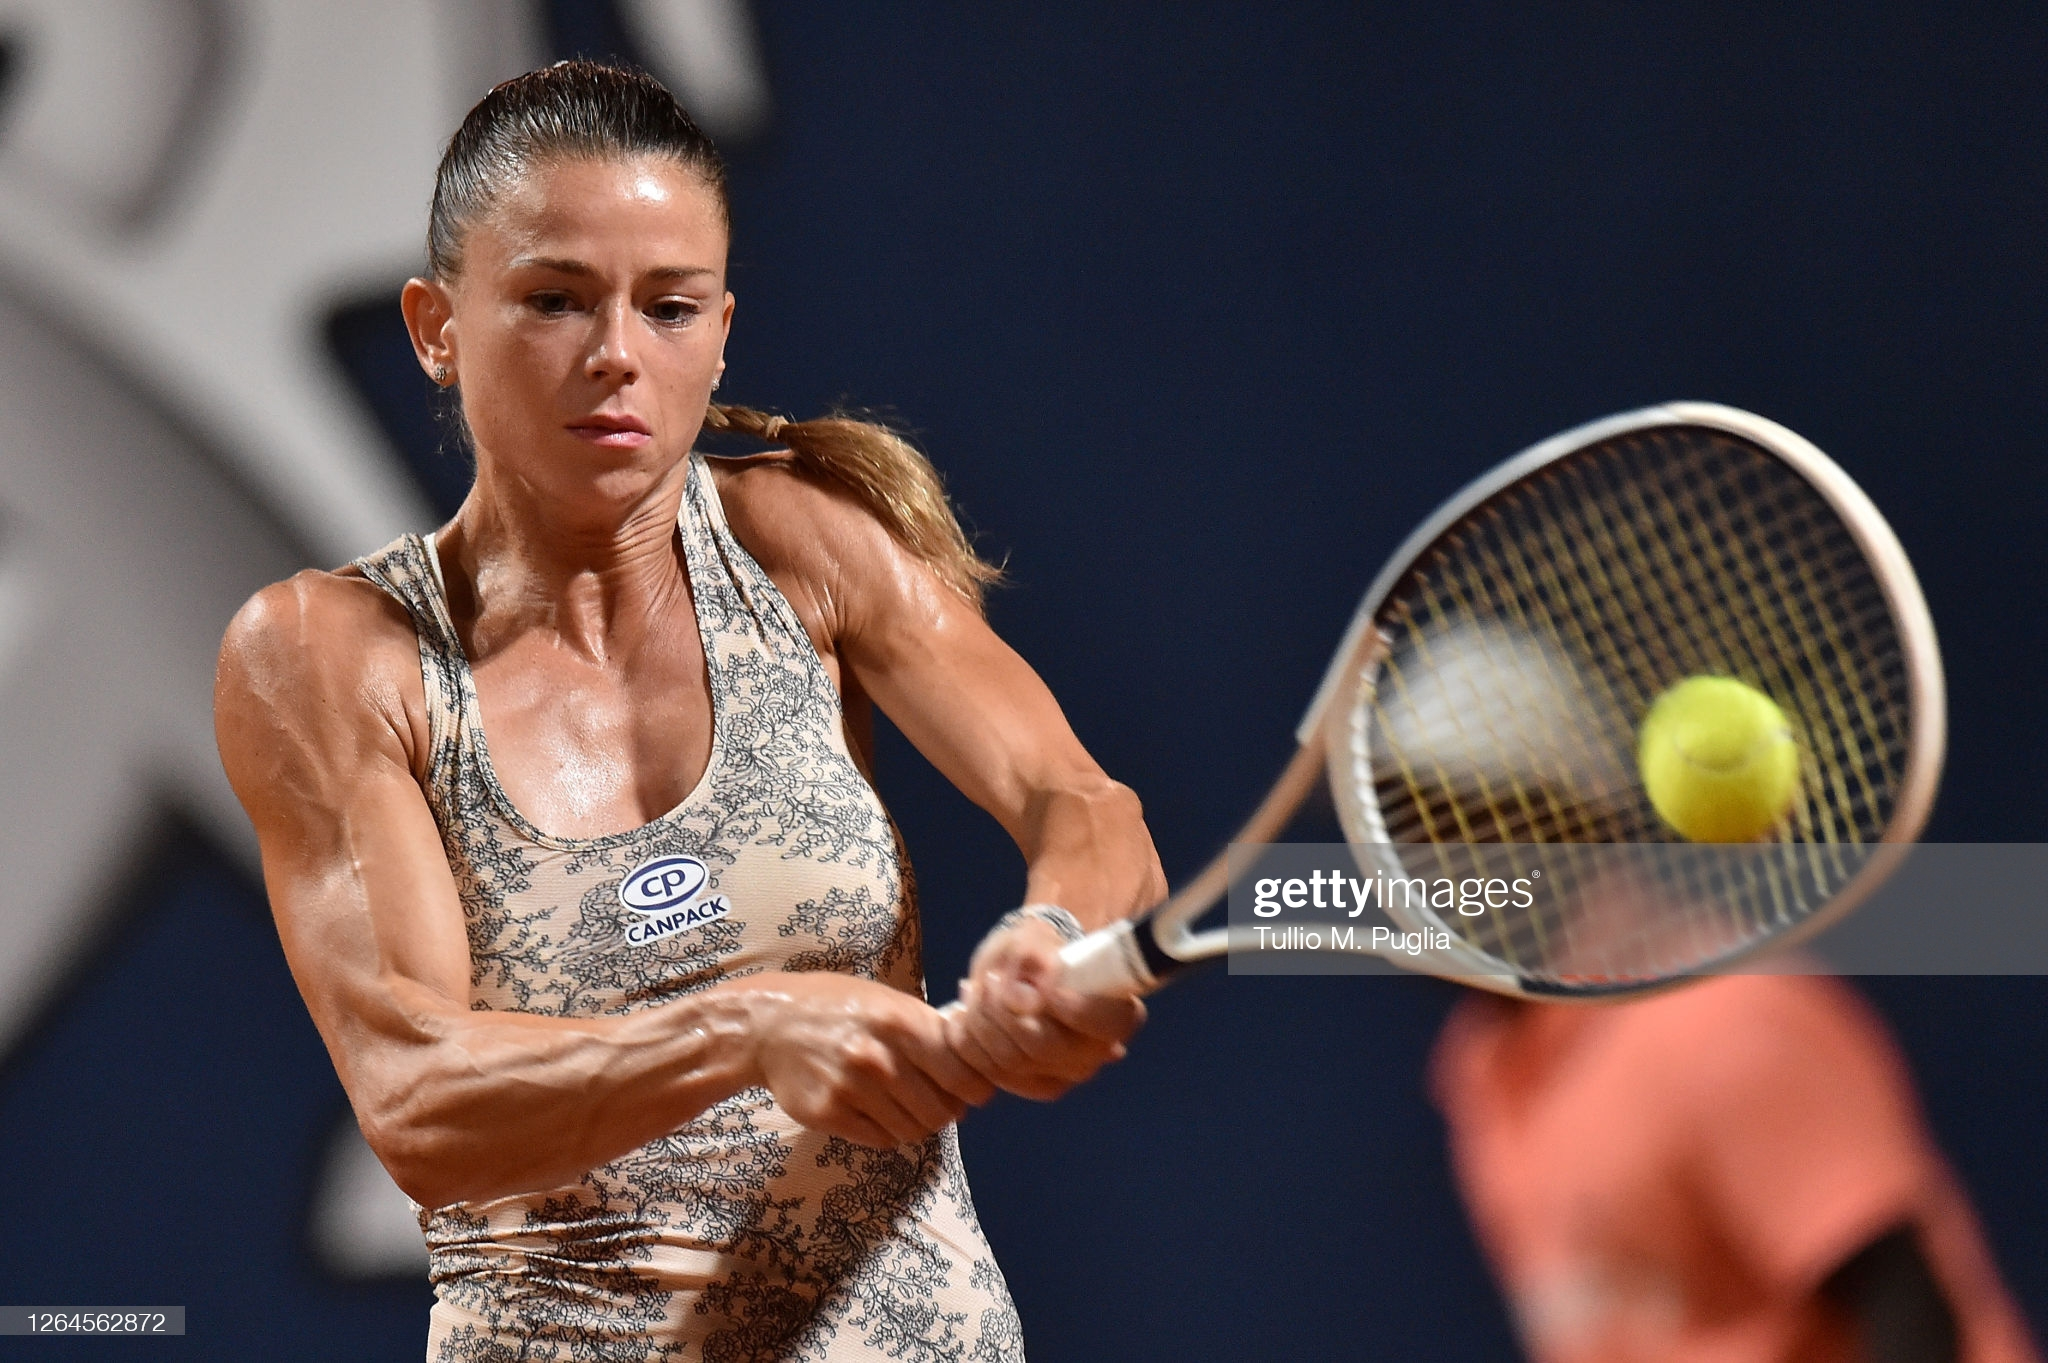 gettyimages-1264562872-2048x2048.jpg